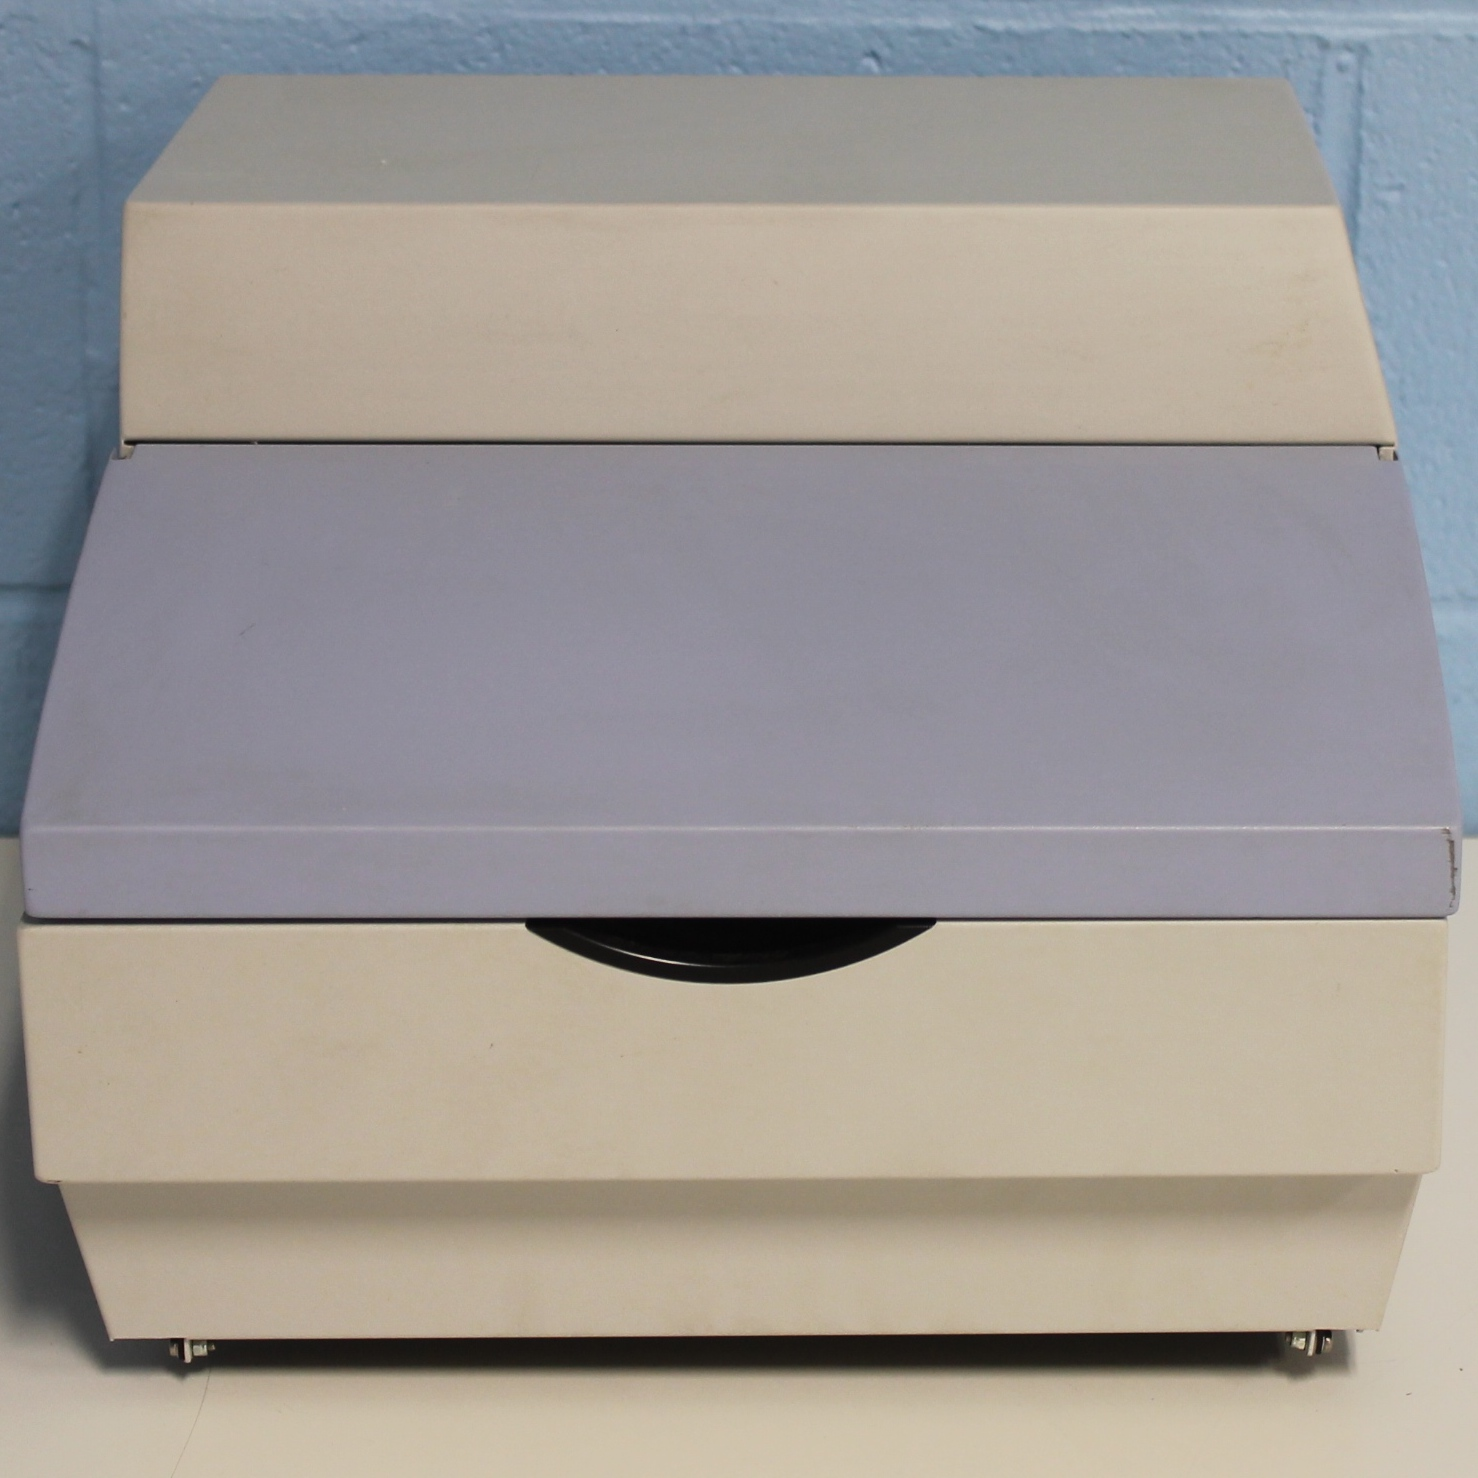 Perkin Elmer 1420-252 2-Channel Injector Image